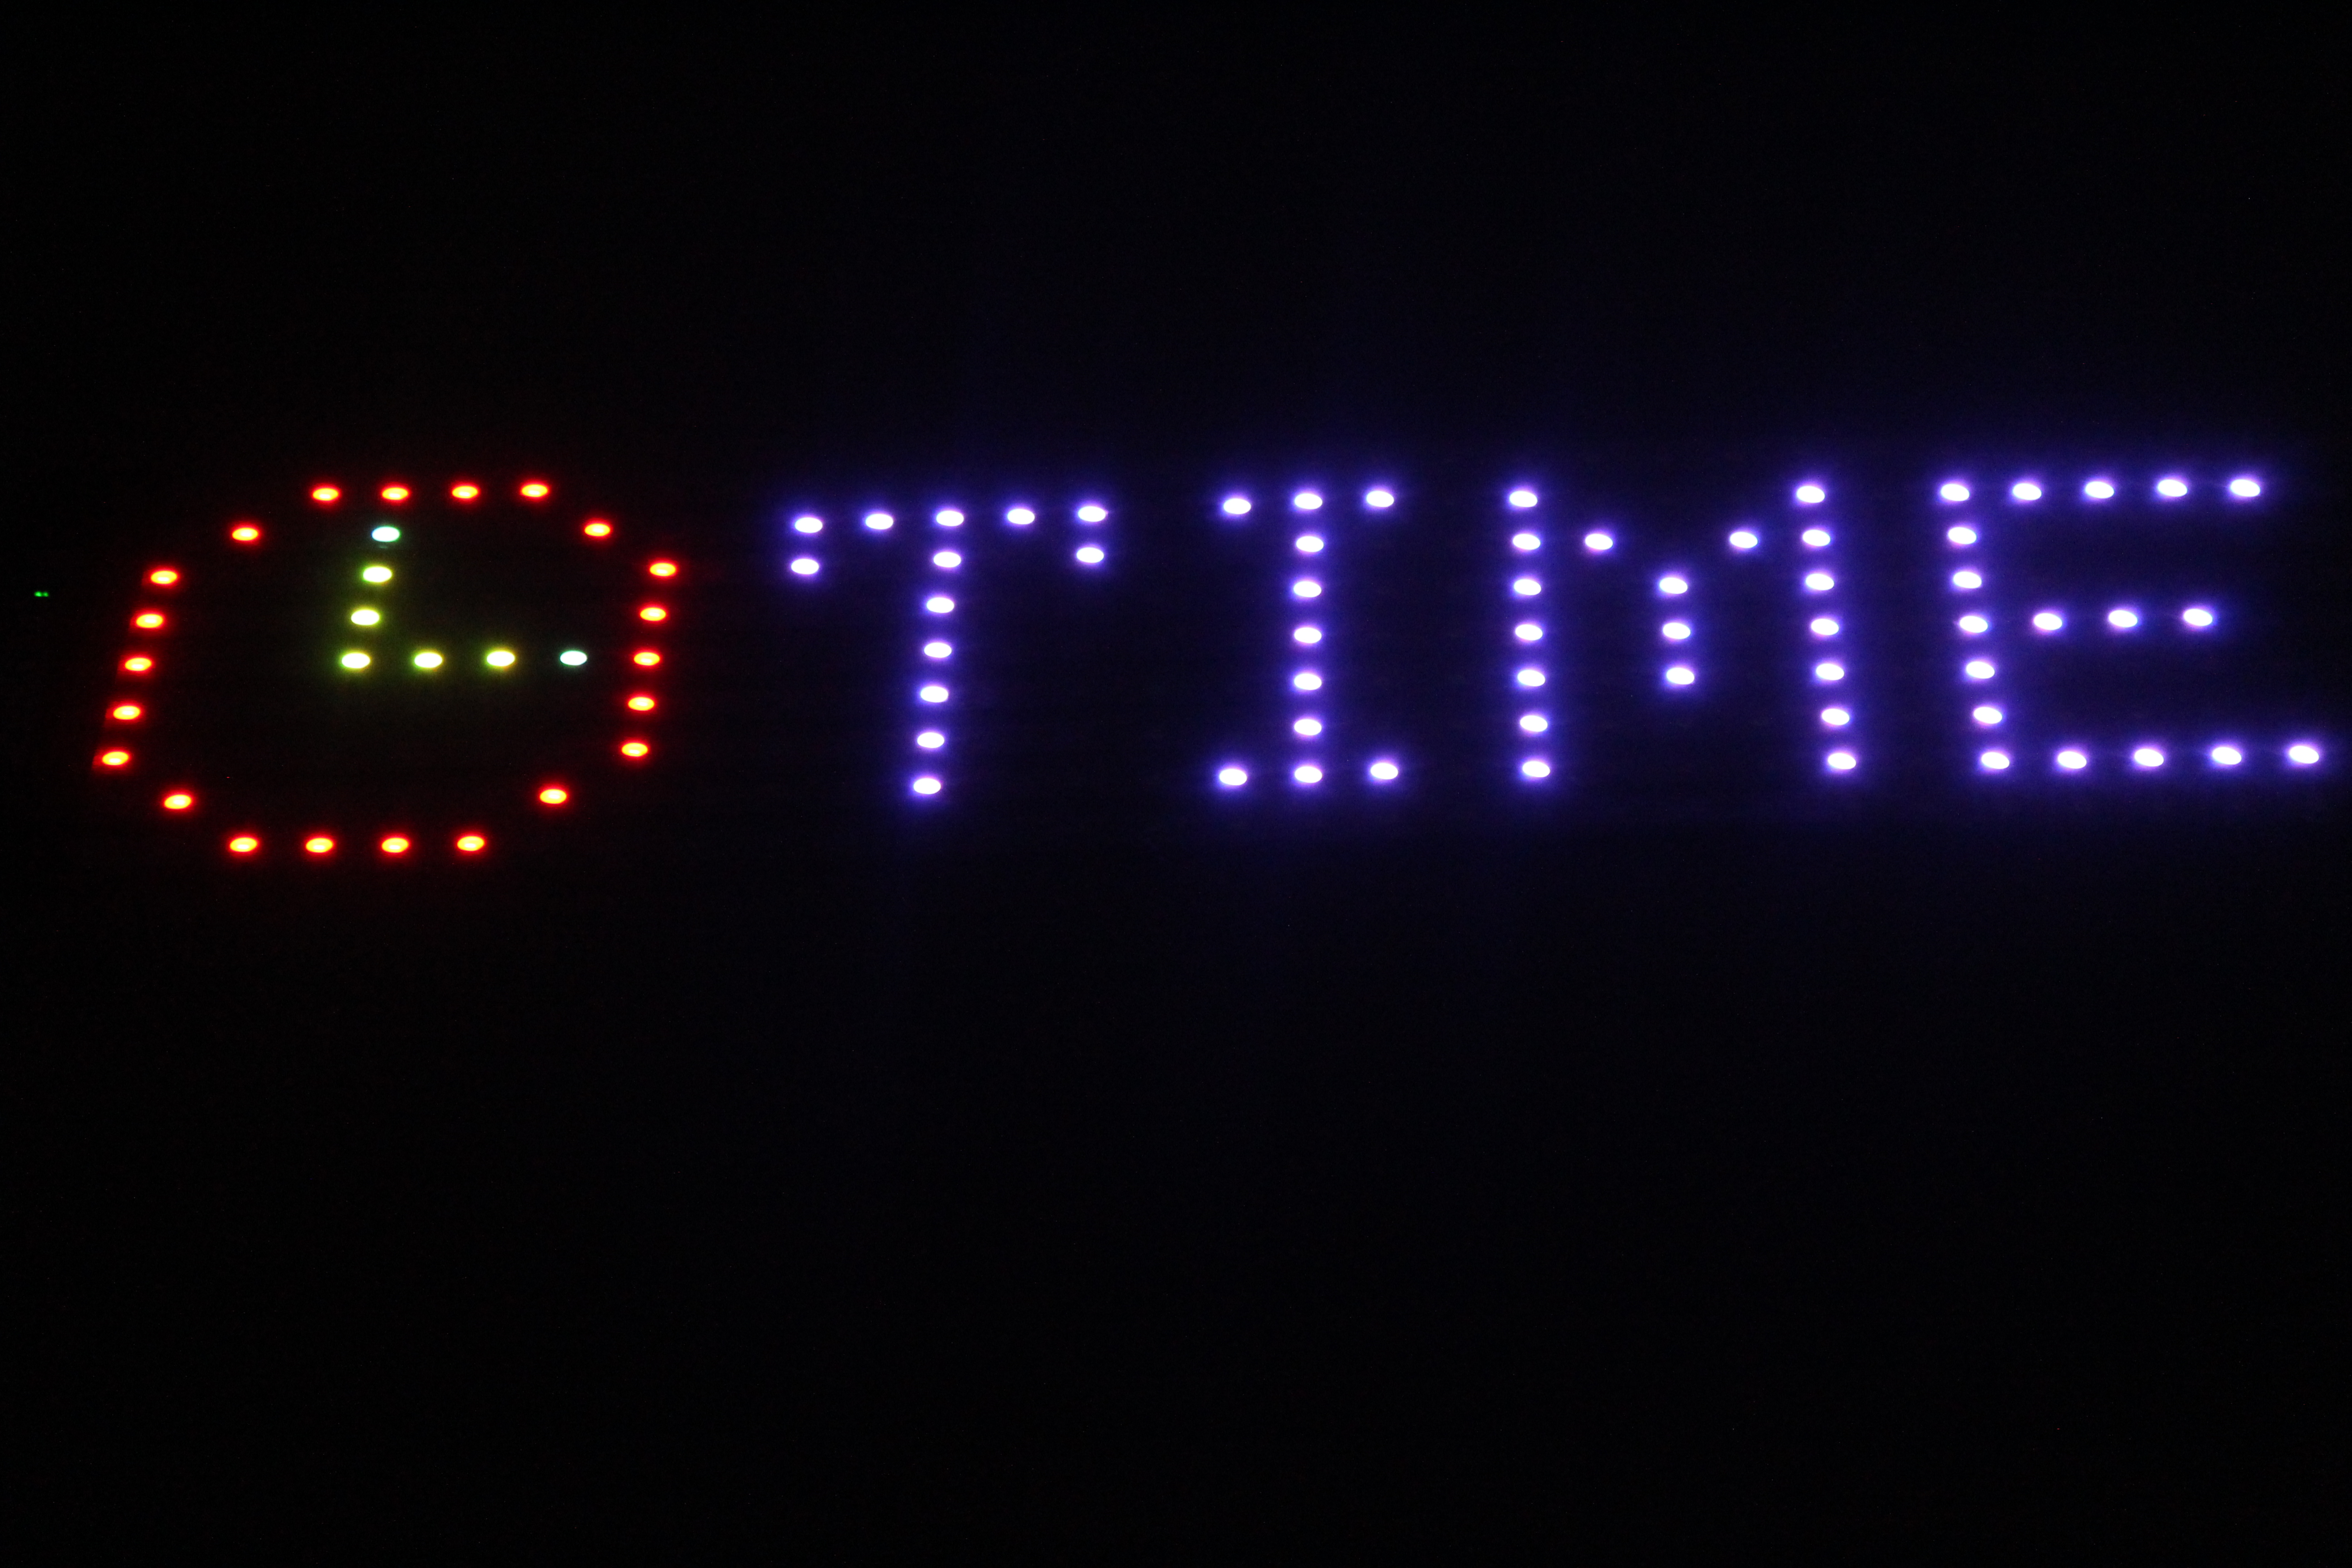 LED display of date and time